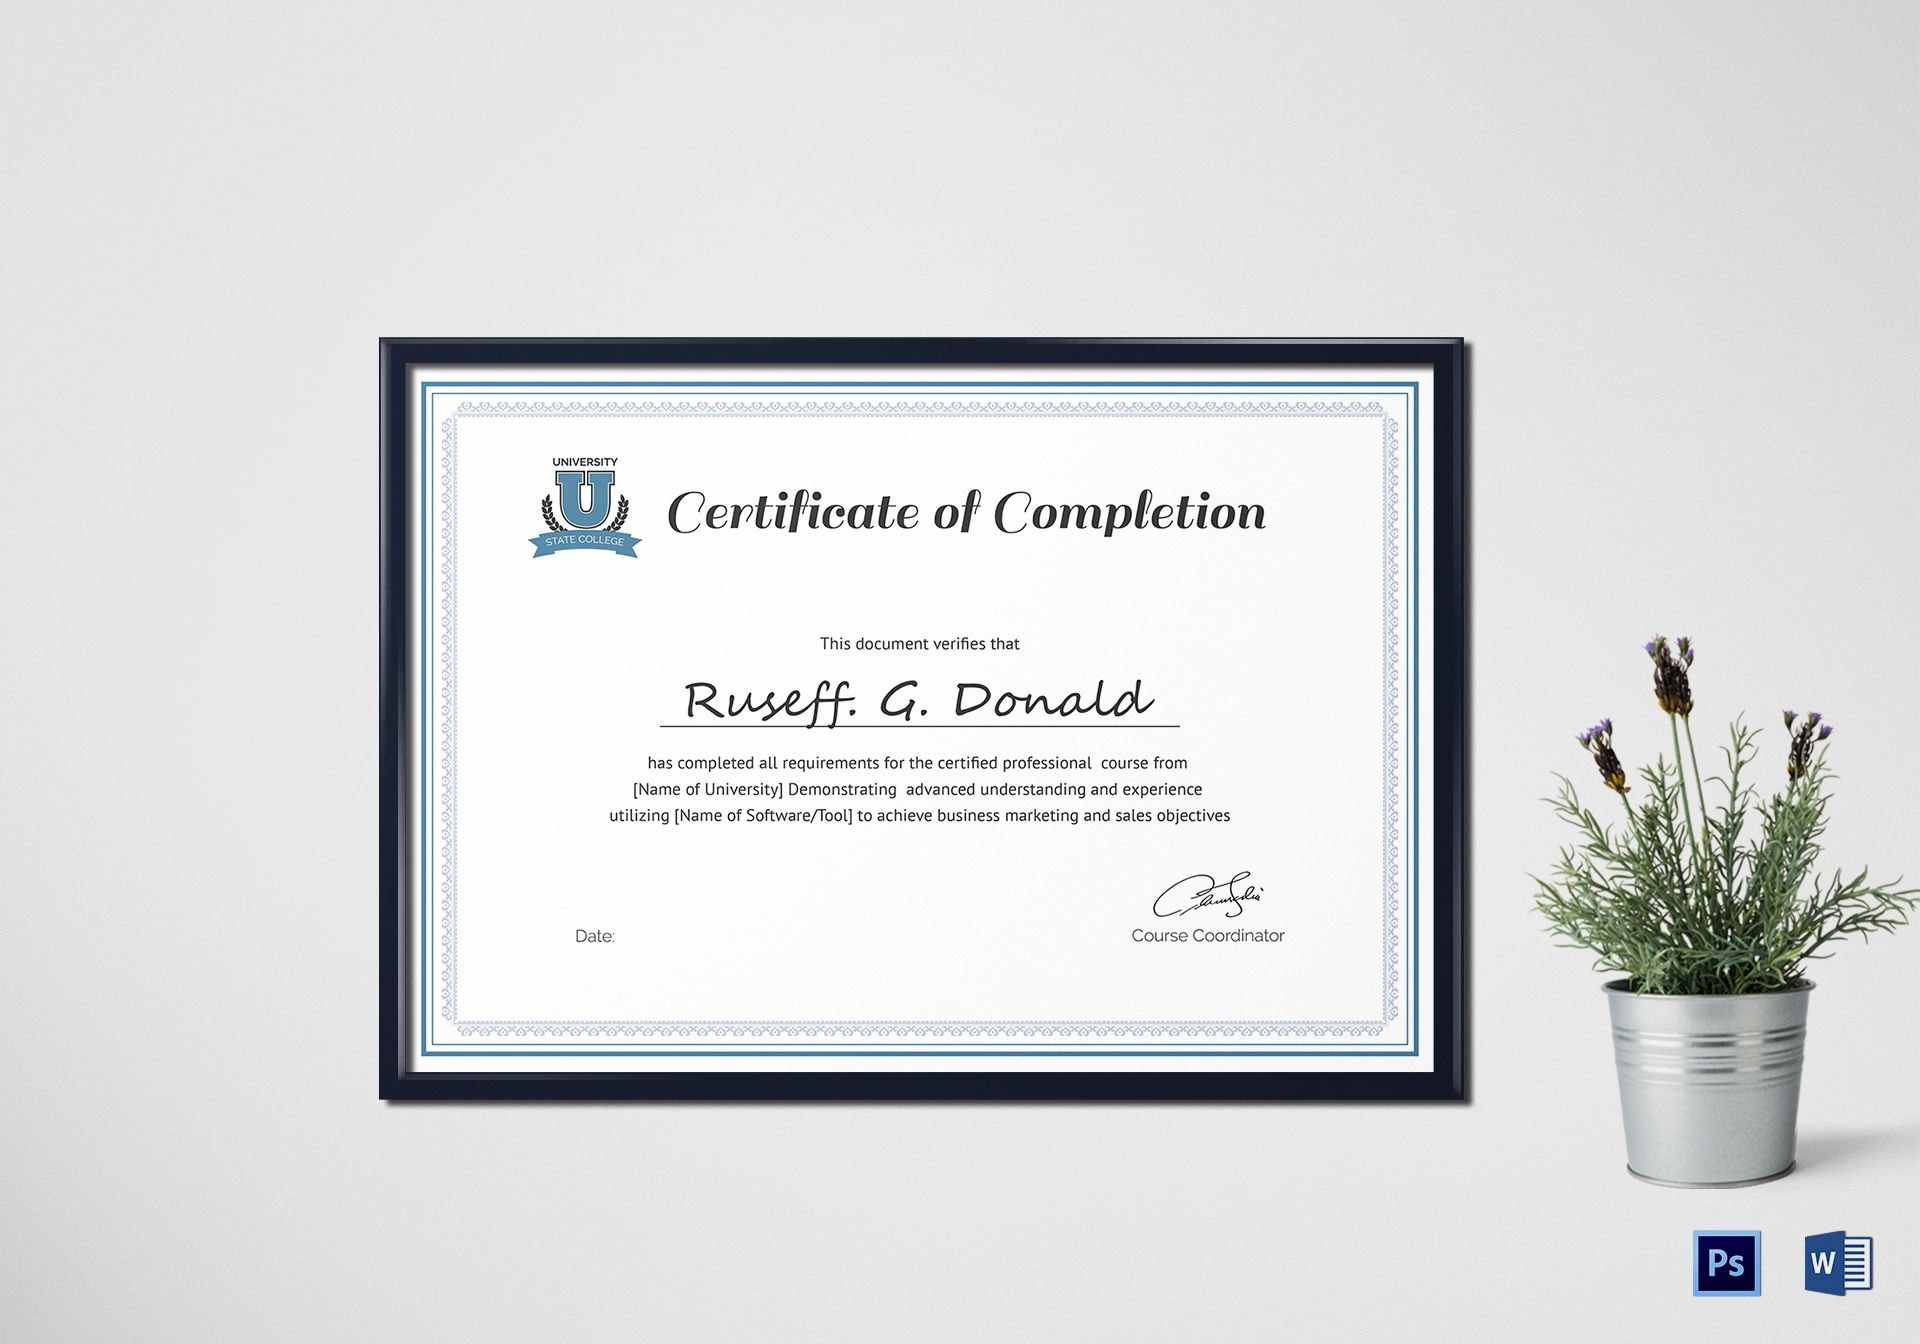 Professional Course Completion Certificate Design Template In Psd Word Regarding Professional Certificate Templates For Word